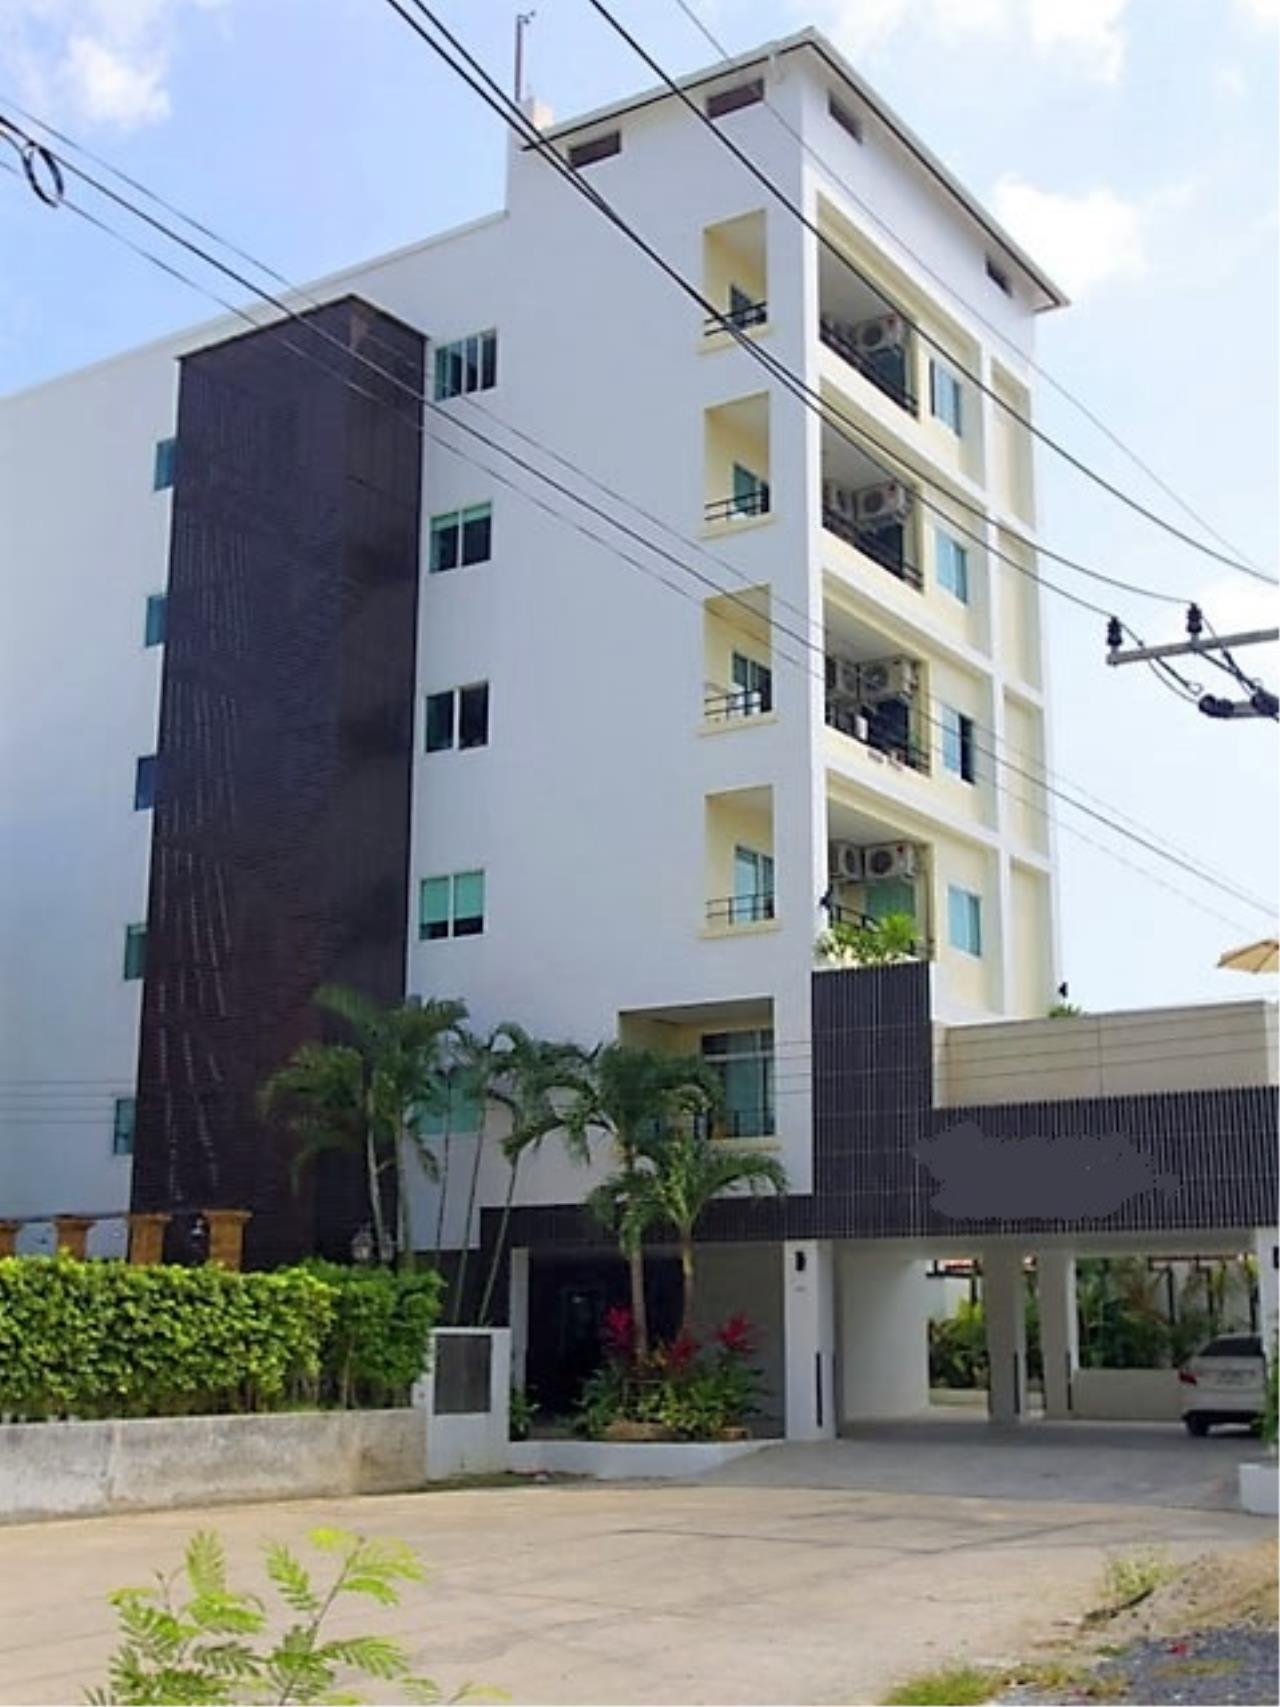 REAL Phuket  Agency's Investment Property - Fully Operational 7-Floor Condo Building with 22 Units 1